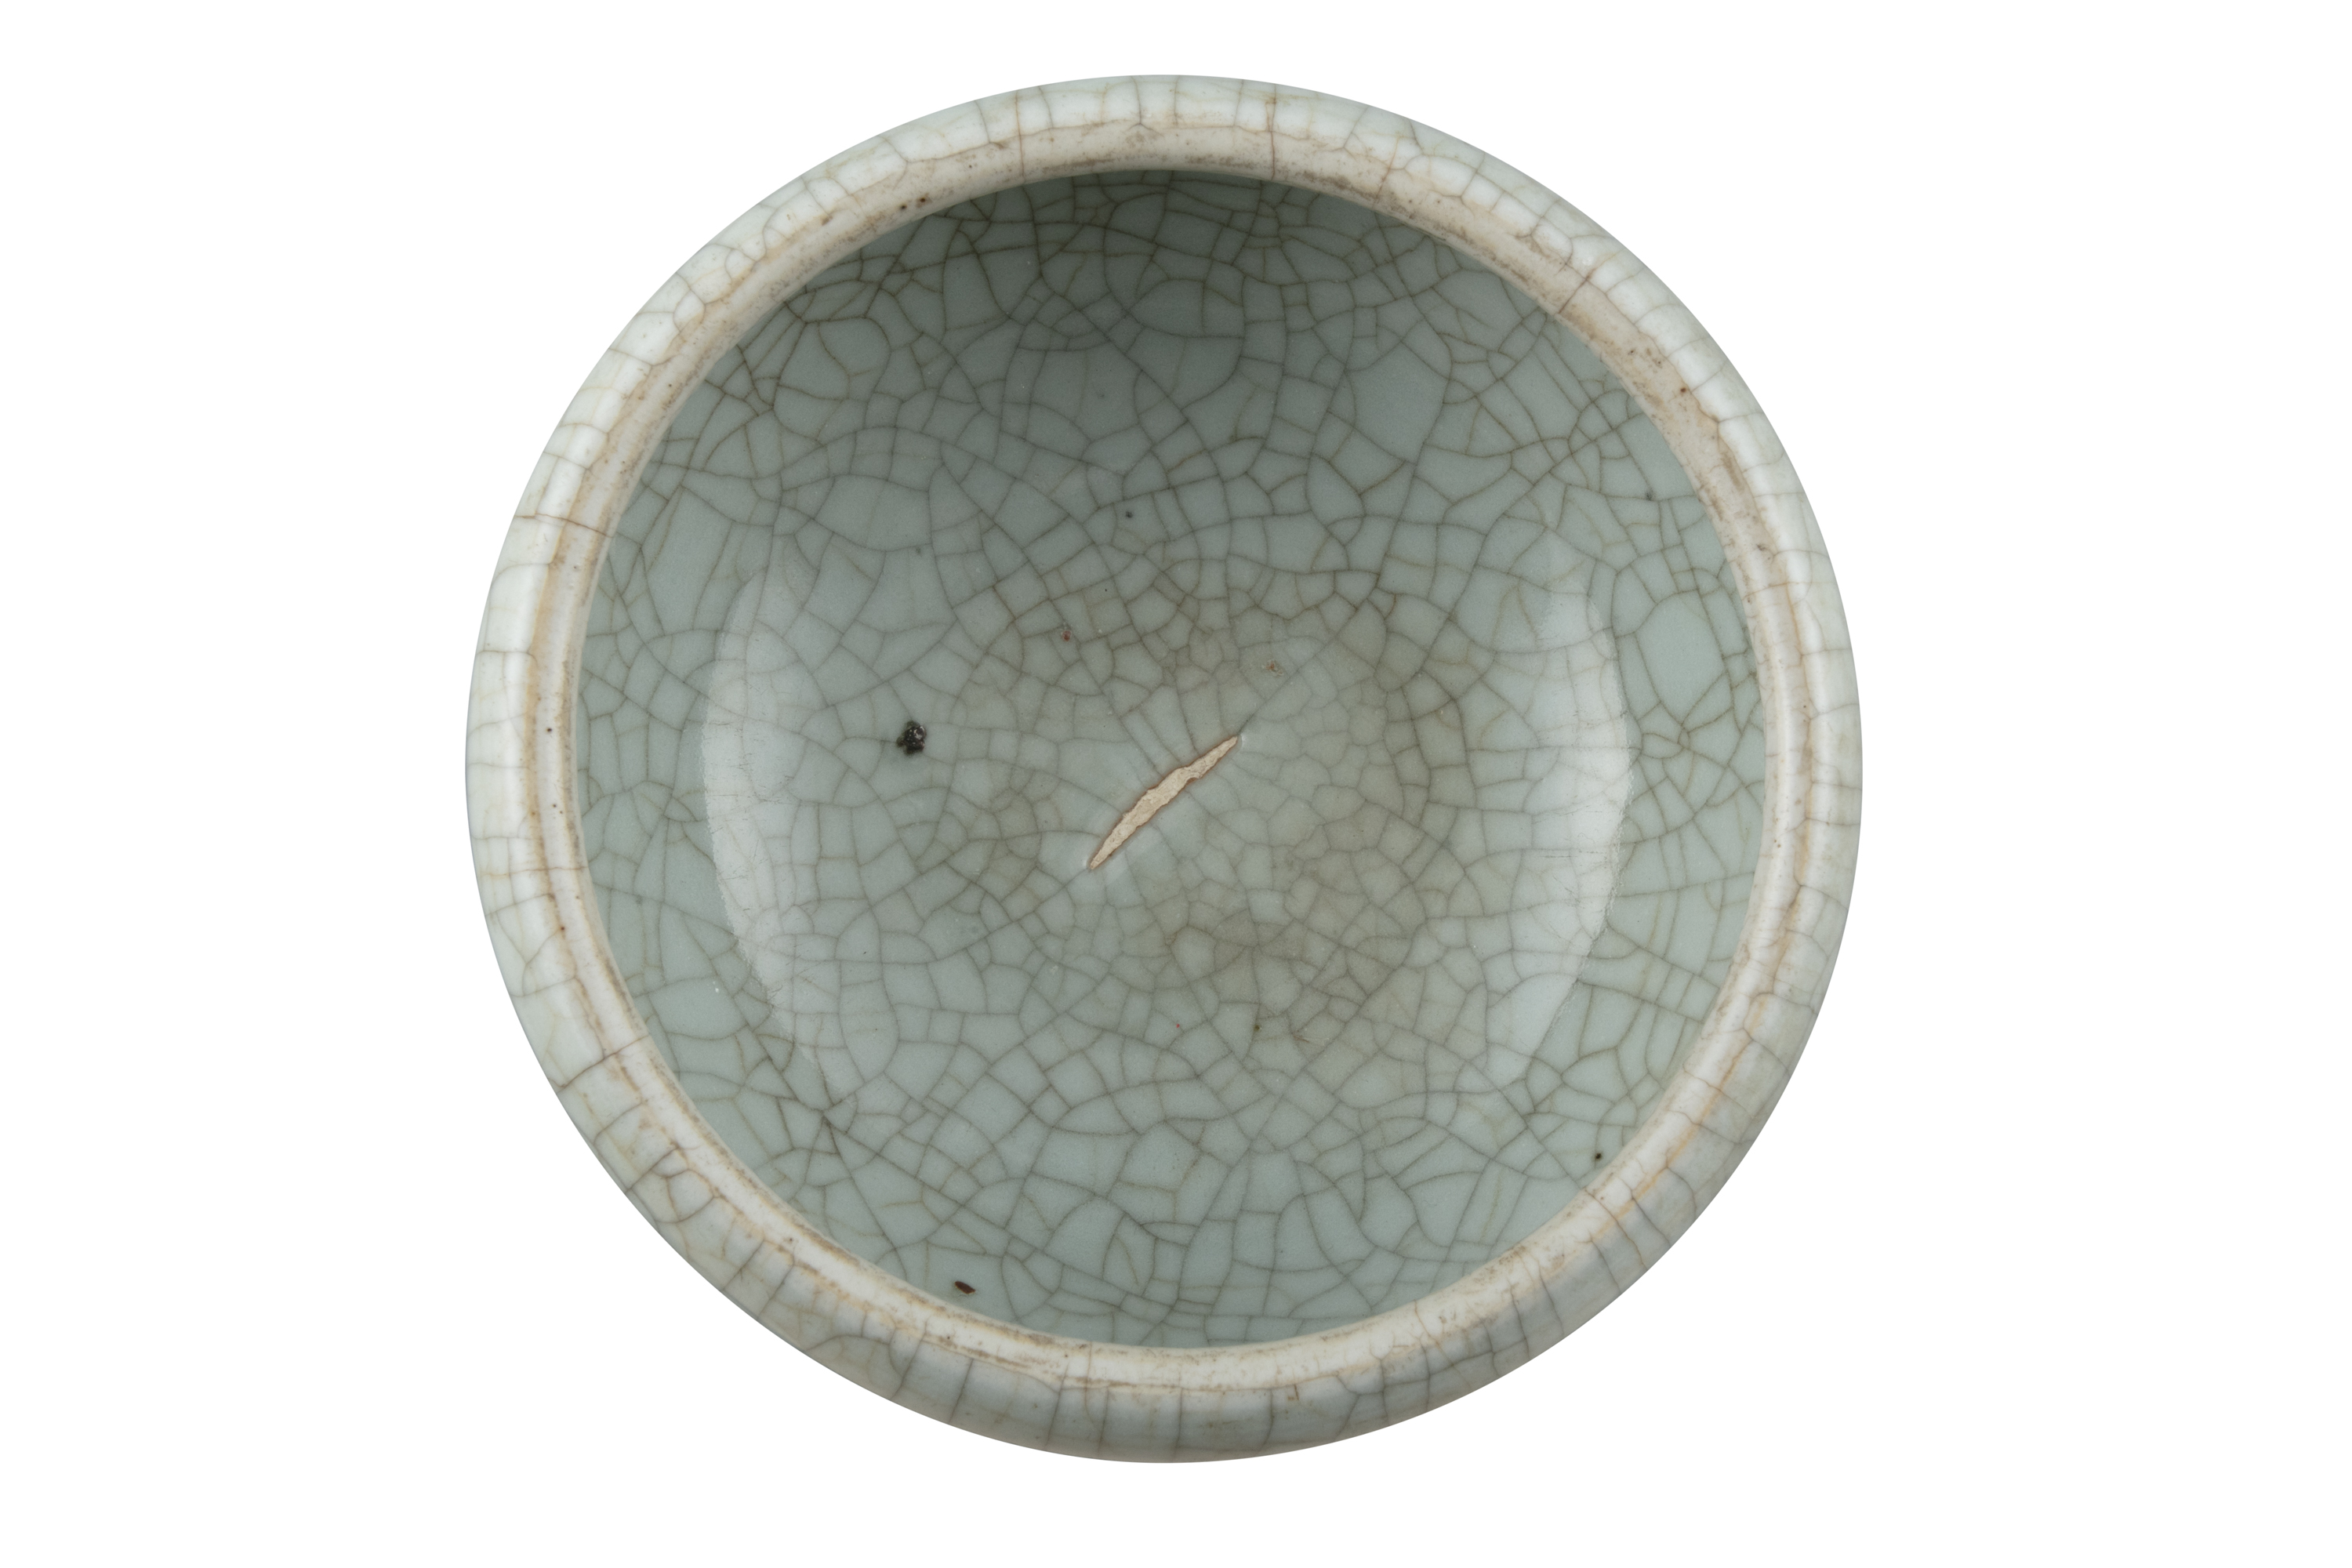 A GEYAO TYPE CRACKLED-CELADON GLAZED GLOBULAR INCENSE-BURNER China, Late Qing to Republican period - Image 7 of 11